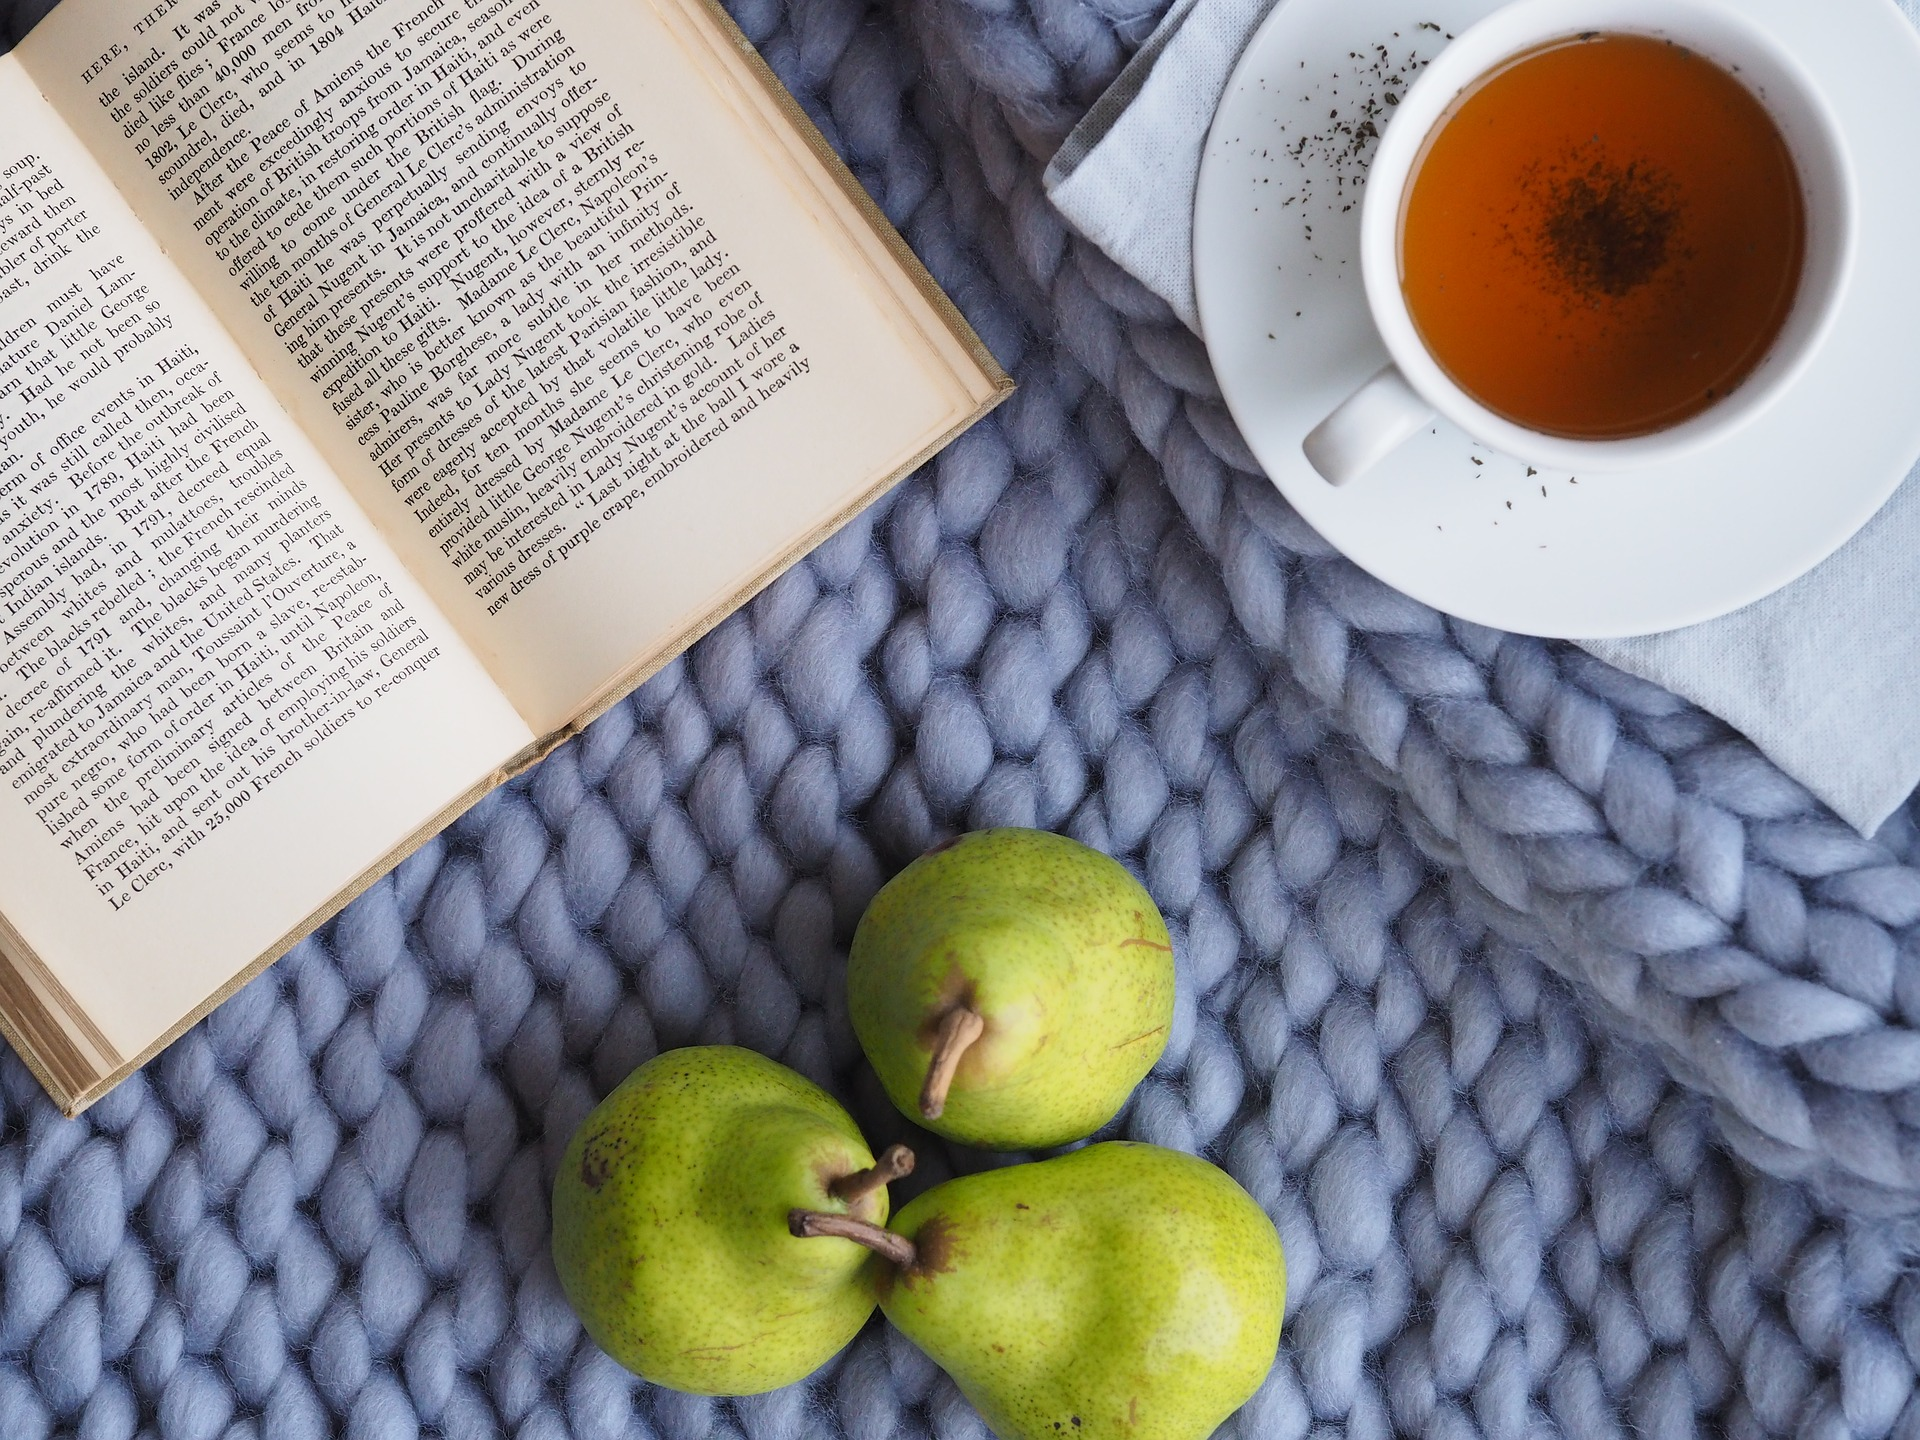 a book, cup of tea and some pears on a blanket